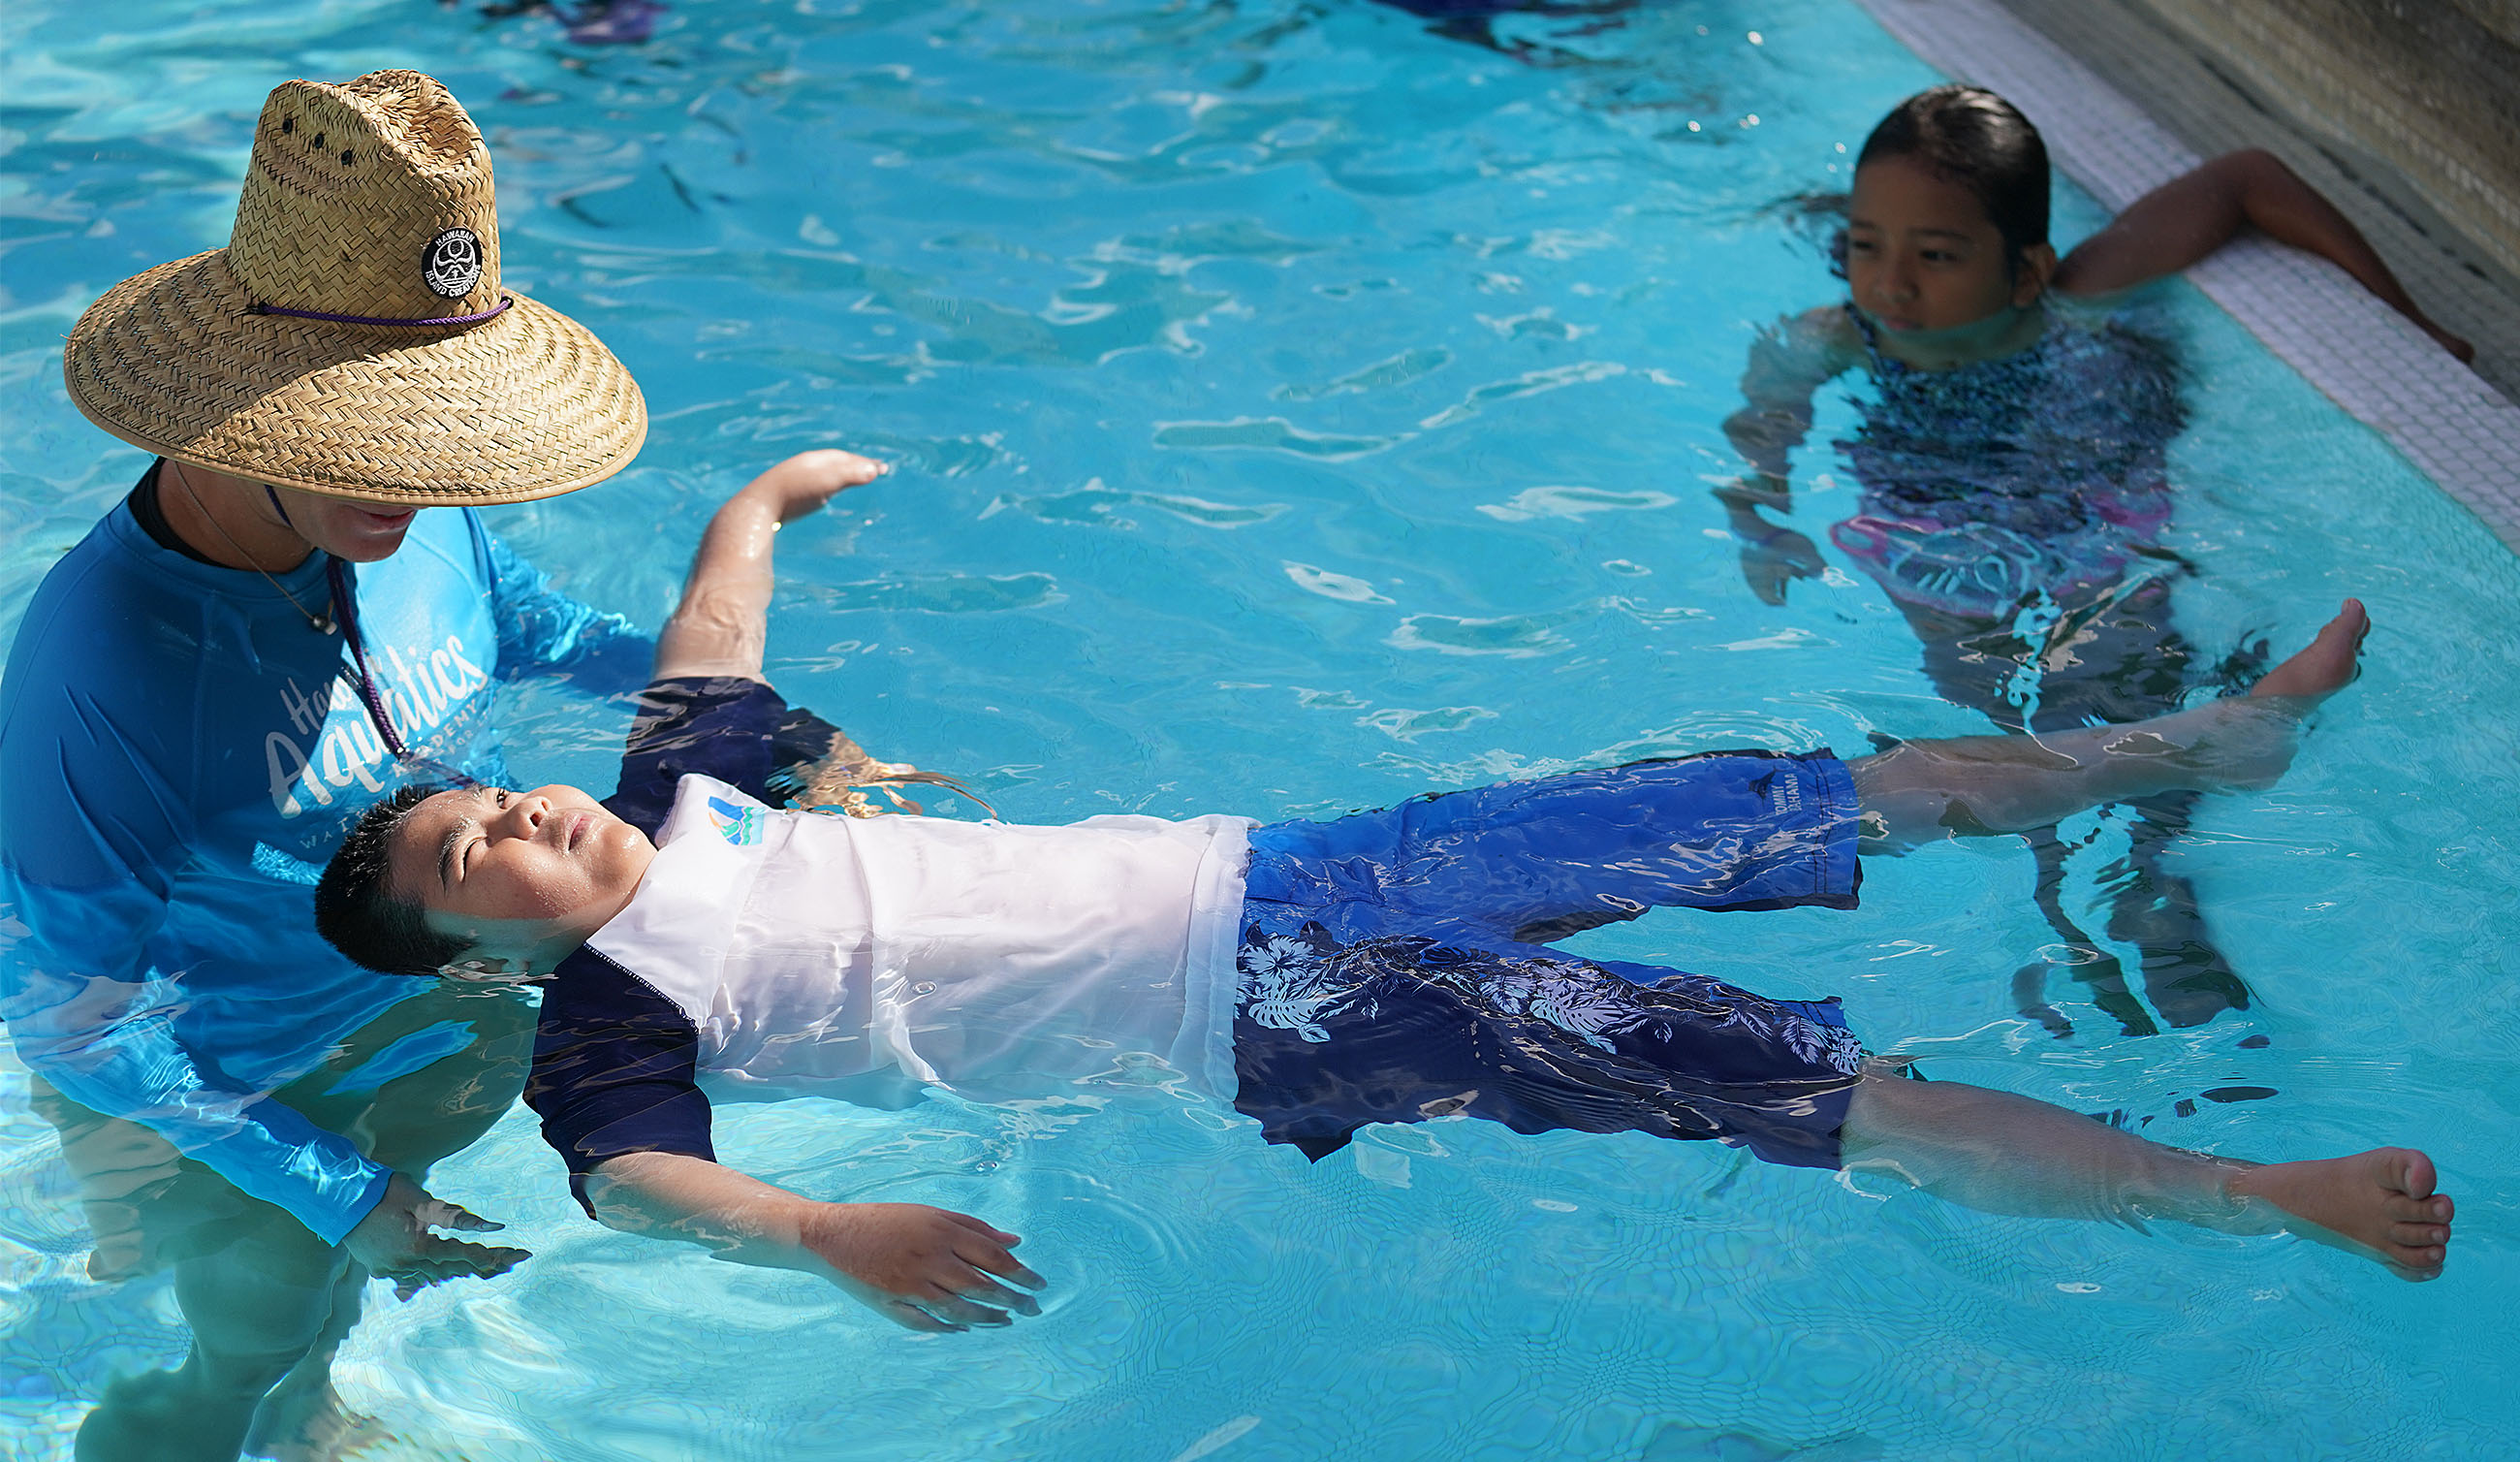 Palama Settlement pool swimming class as student learn how to float on their backs during class.